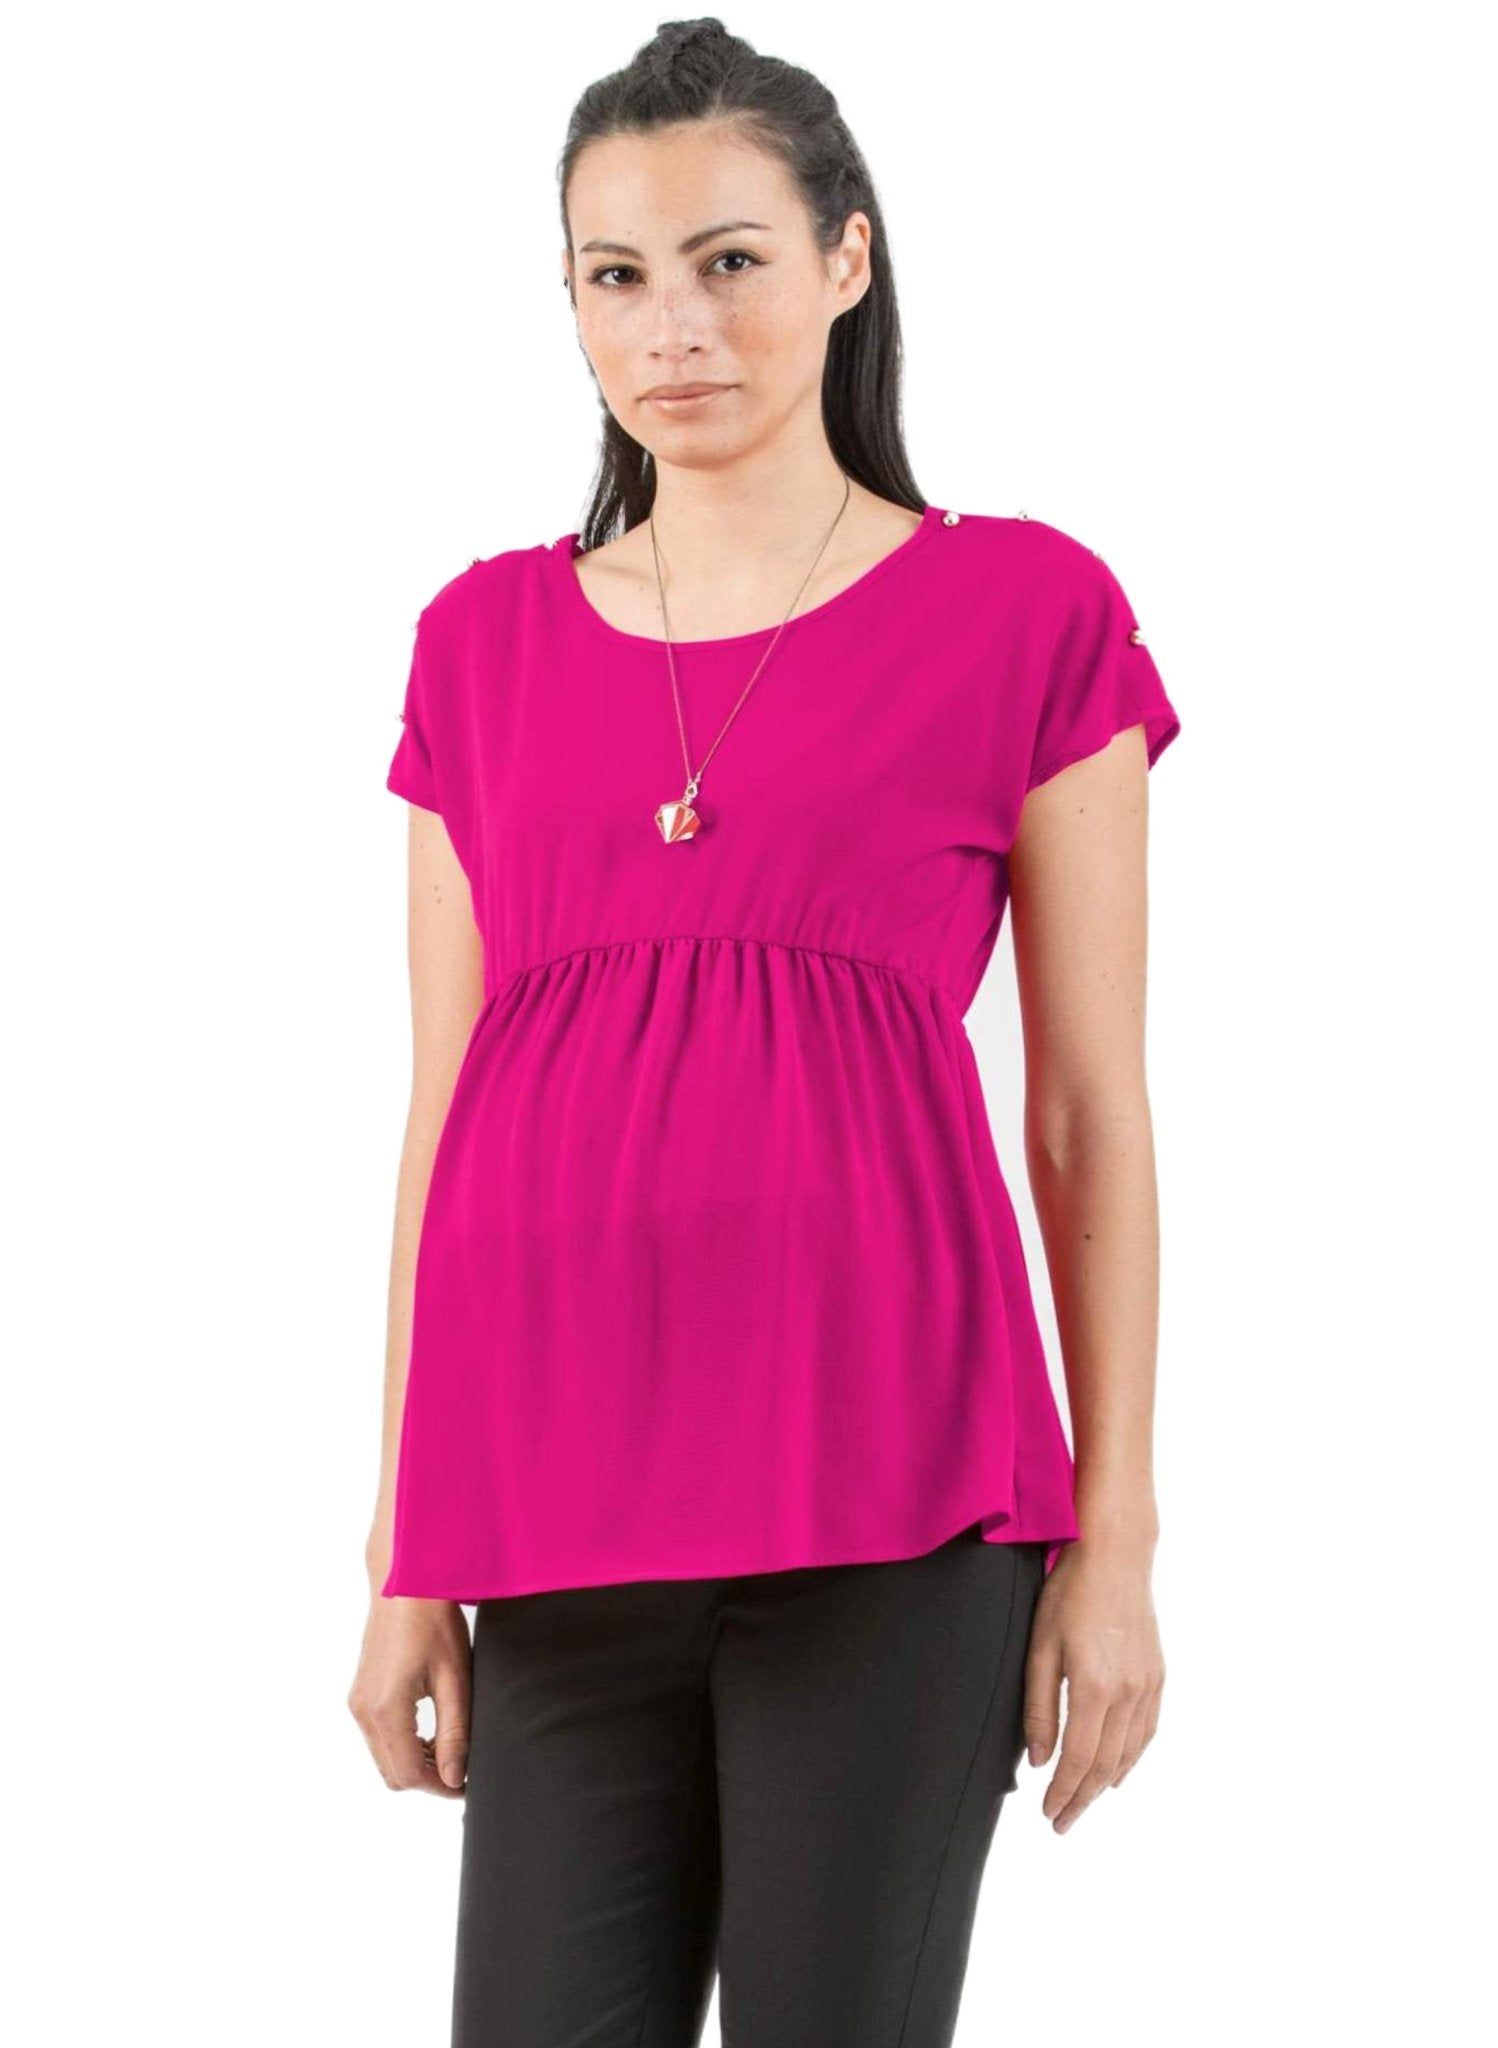 Buttoned Maternity & Nursing Top - Pink - Mums and Bumps